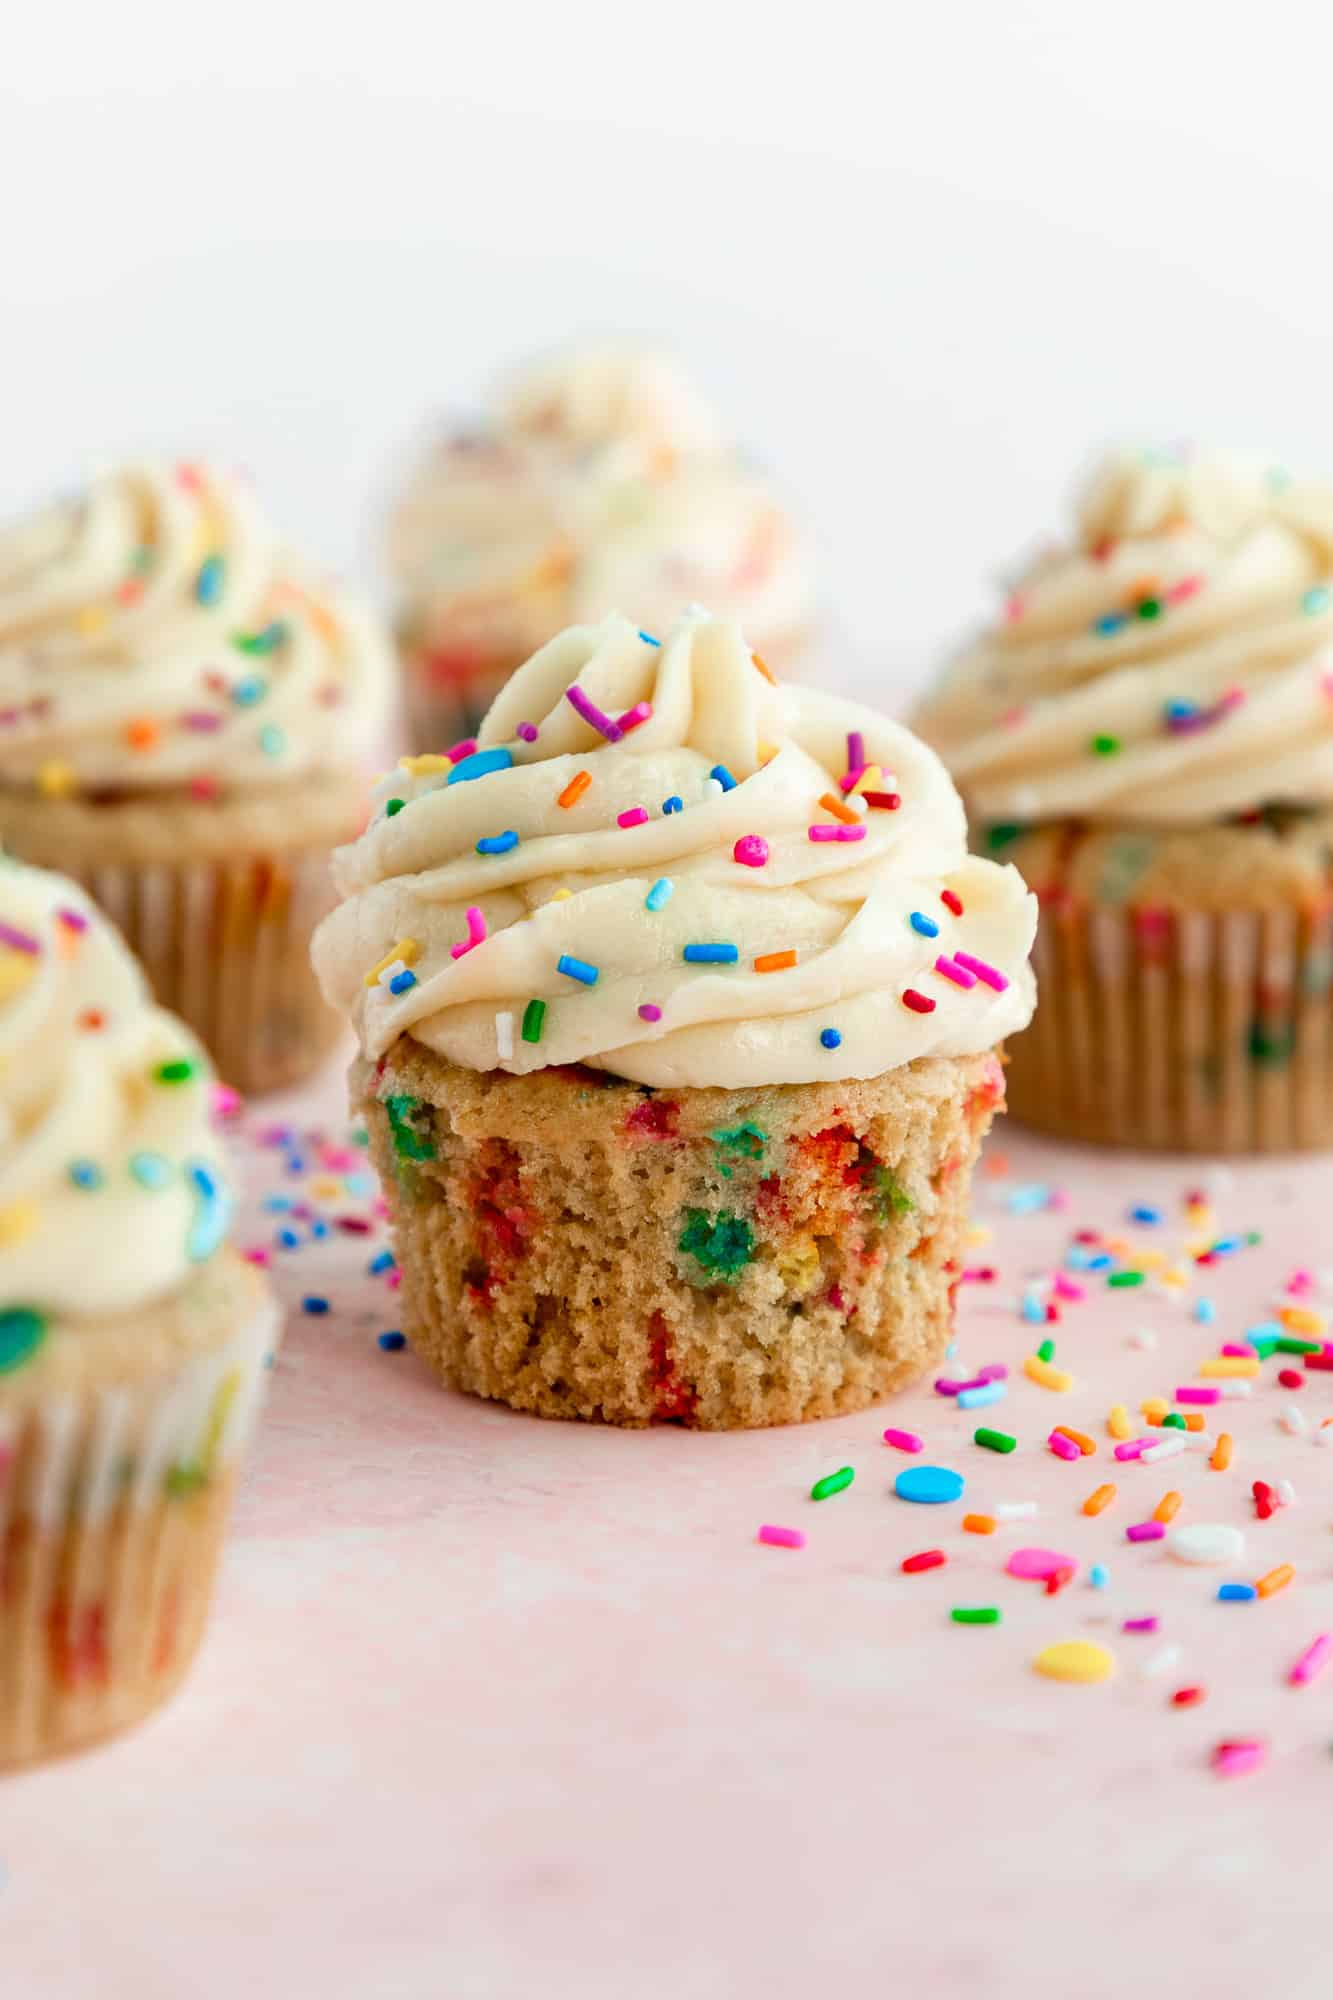 vegan funfetti cupcakes with vanilla frosting and rainbow sprinkles on a pink surface